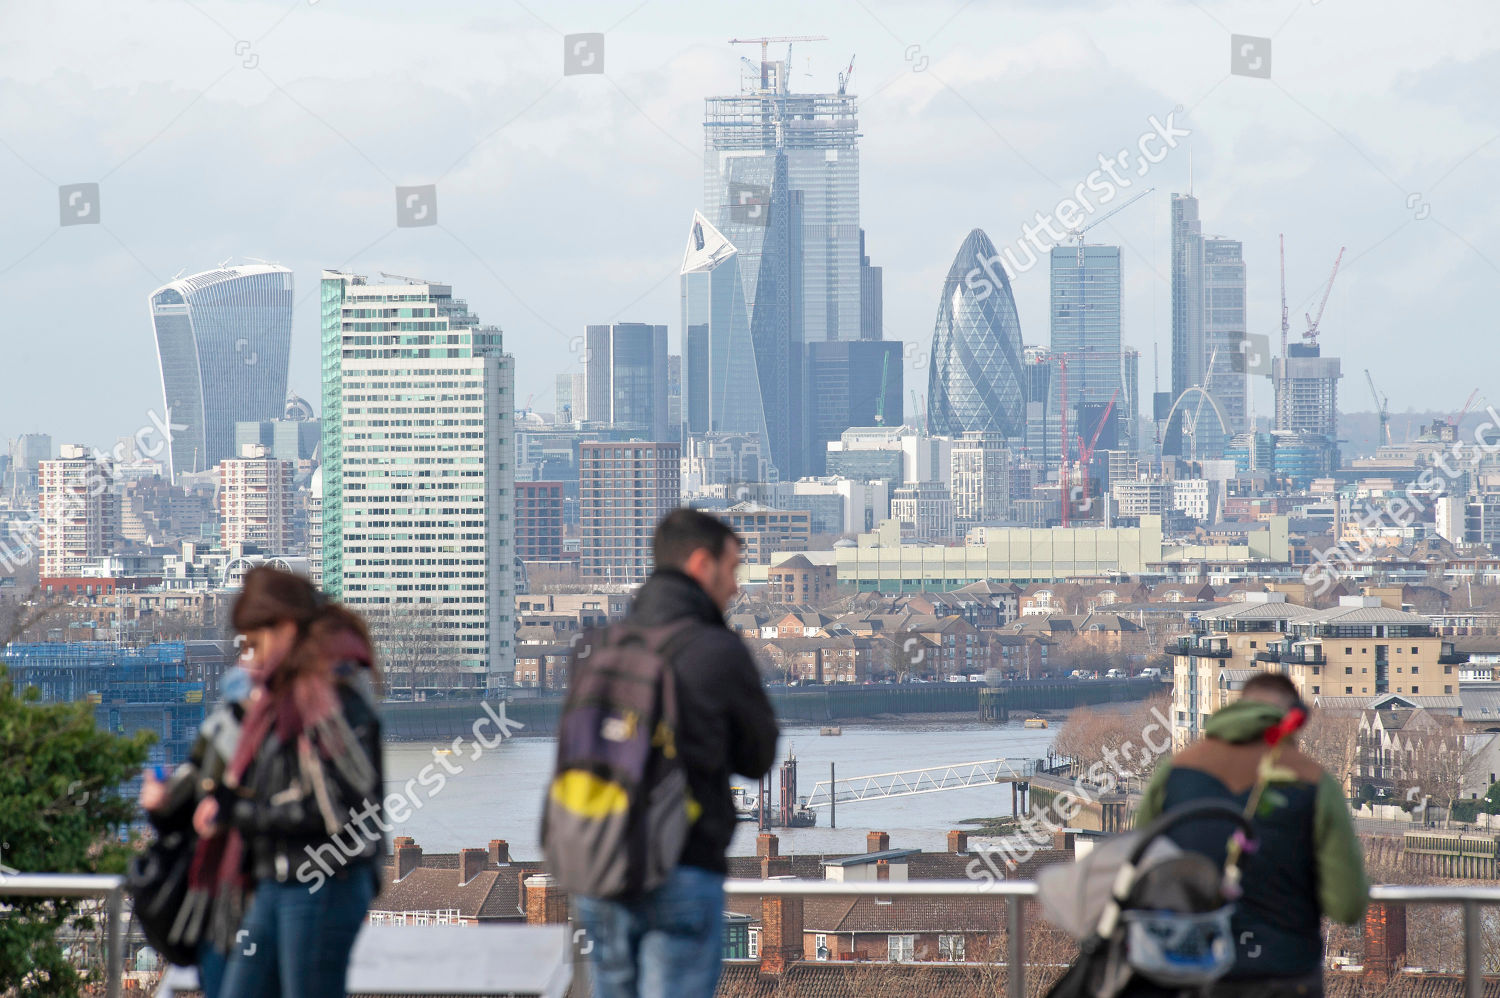 view across City London Bright milder weather Editorial Stock Photo